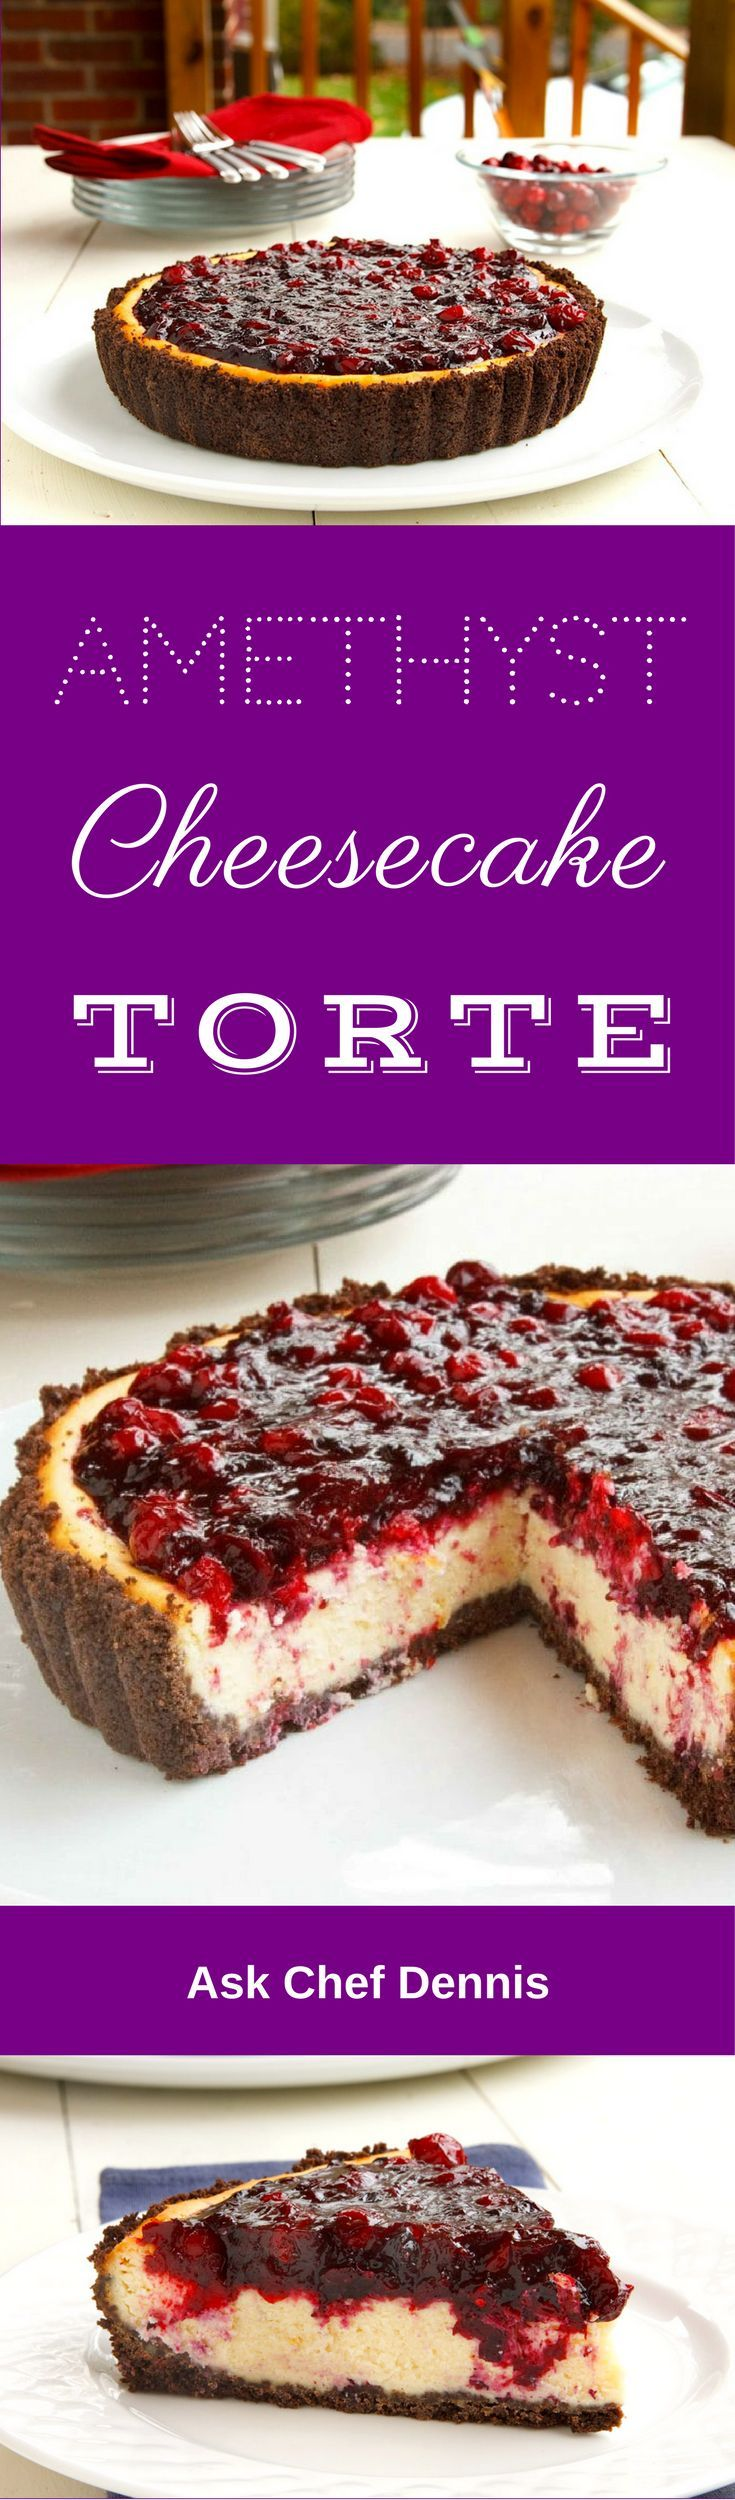 Blueberries and Cranberries make up the topping for this Amethyst cheesecake. With a chocolate graham crust, this creamy cheesecake recipe is sure to please a crowd. by Ask Chef Dennis